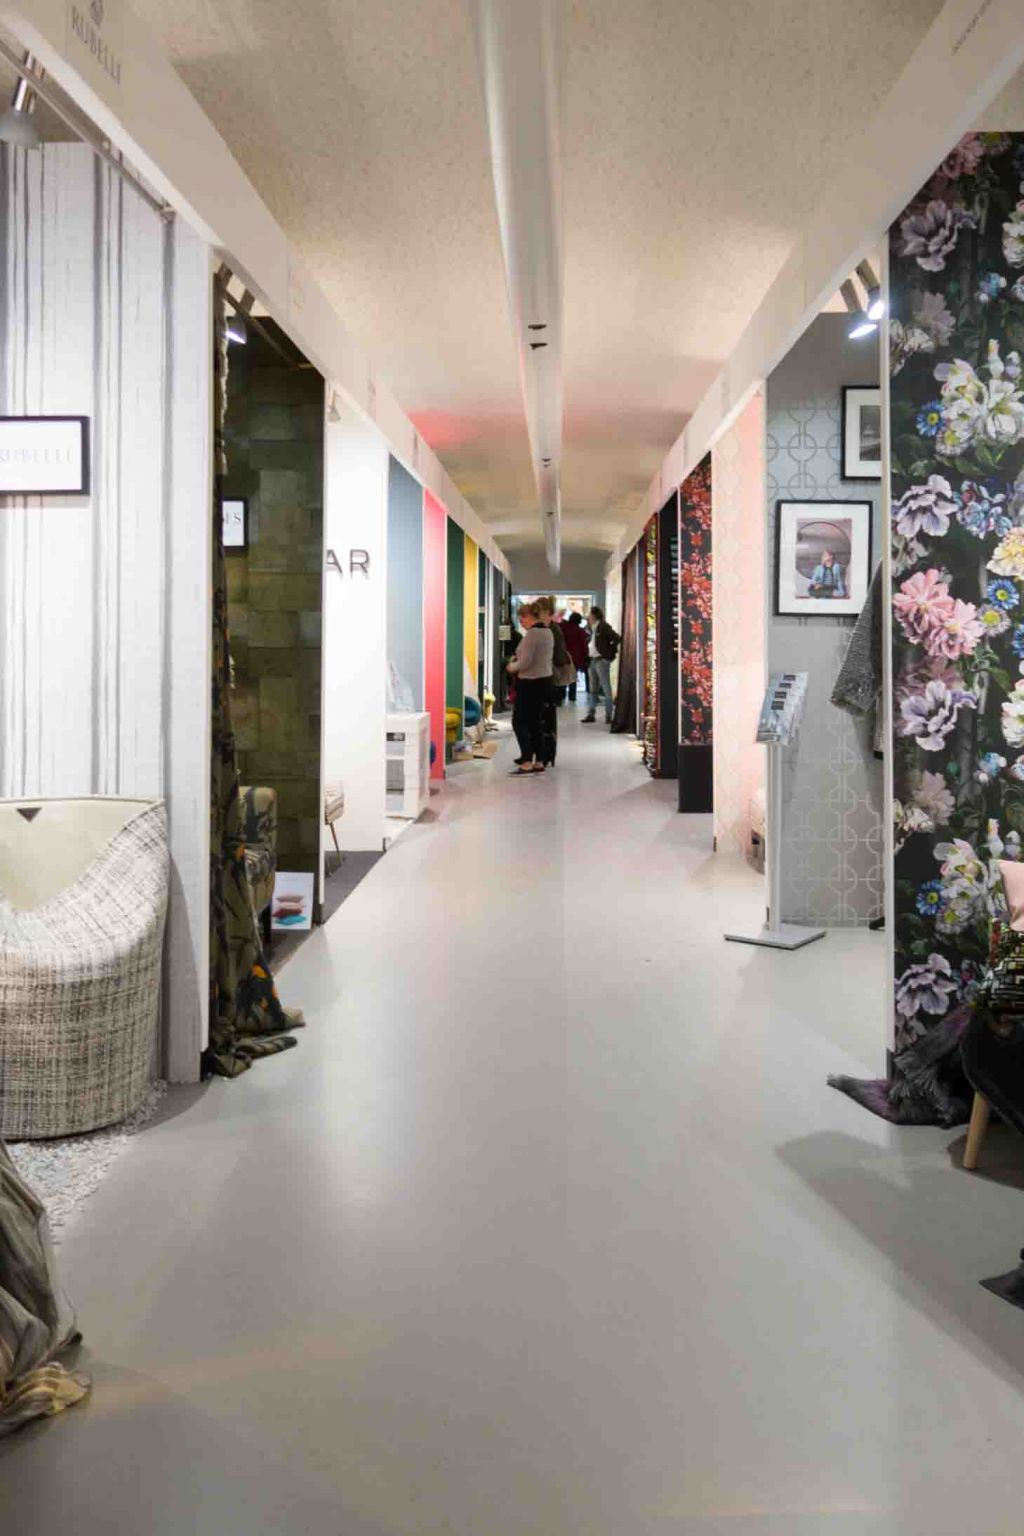 De Decoration Lane op de Salon Residence 2017